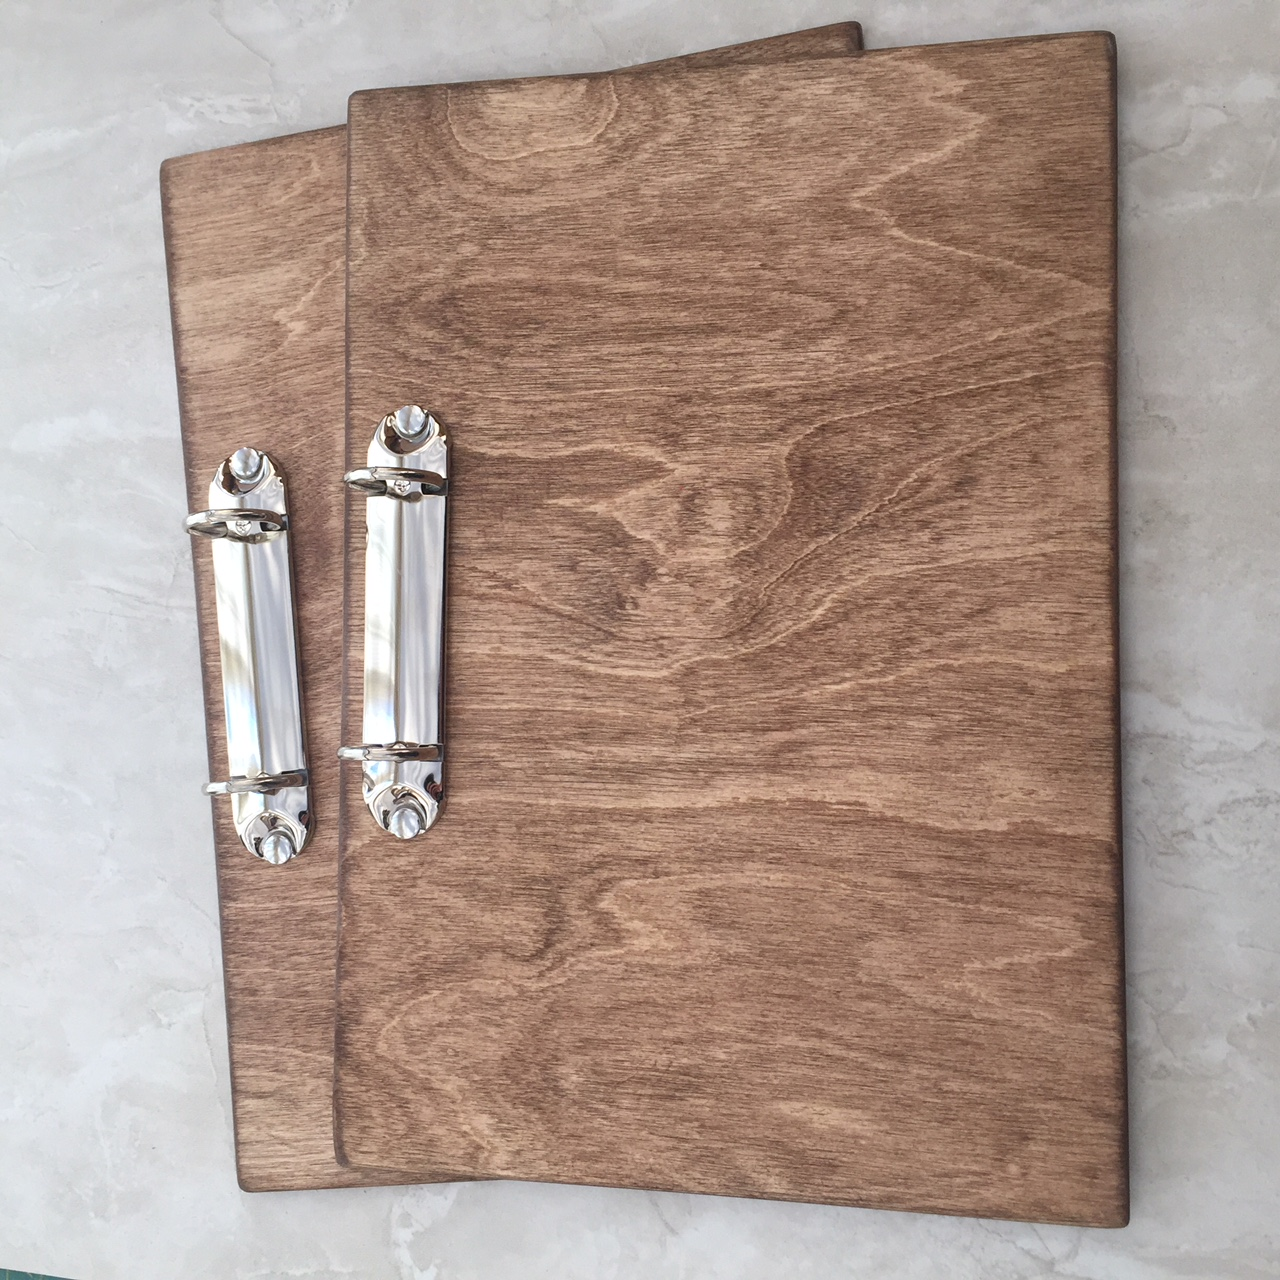 Binder Clipboard